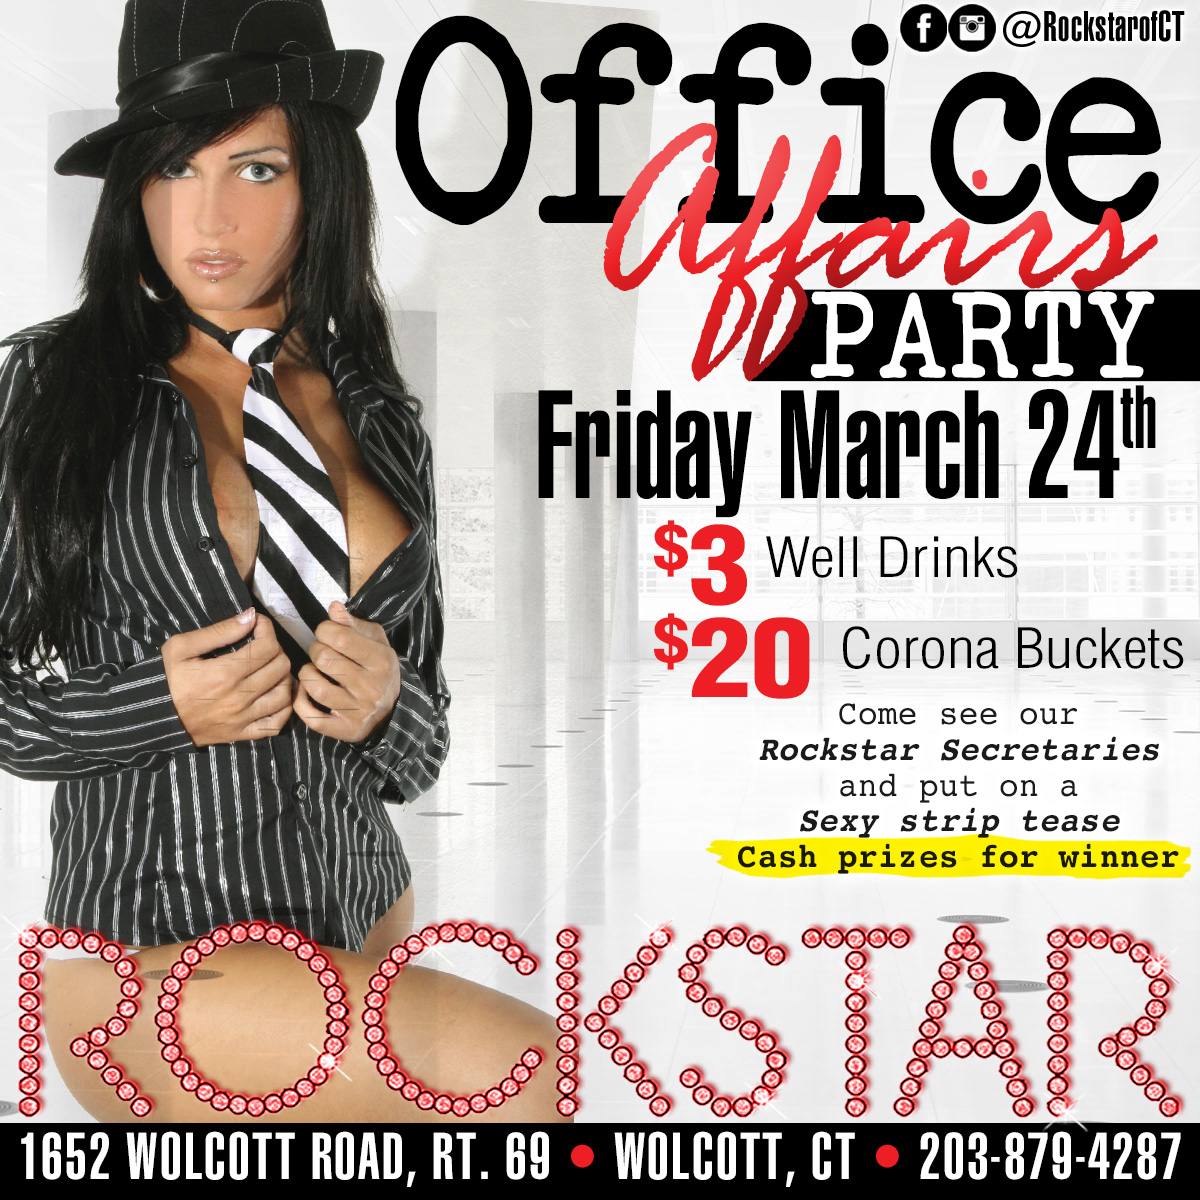 Office Affairs Party | Rockstar Strip Club Connecticut